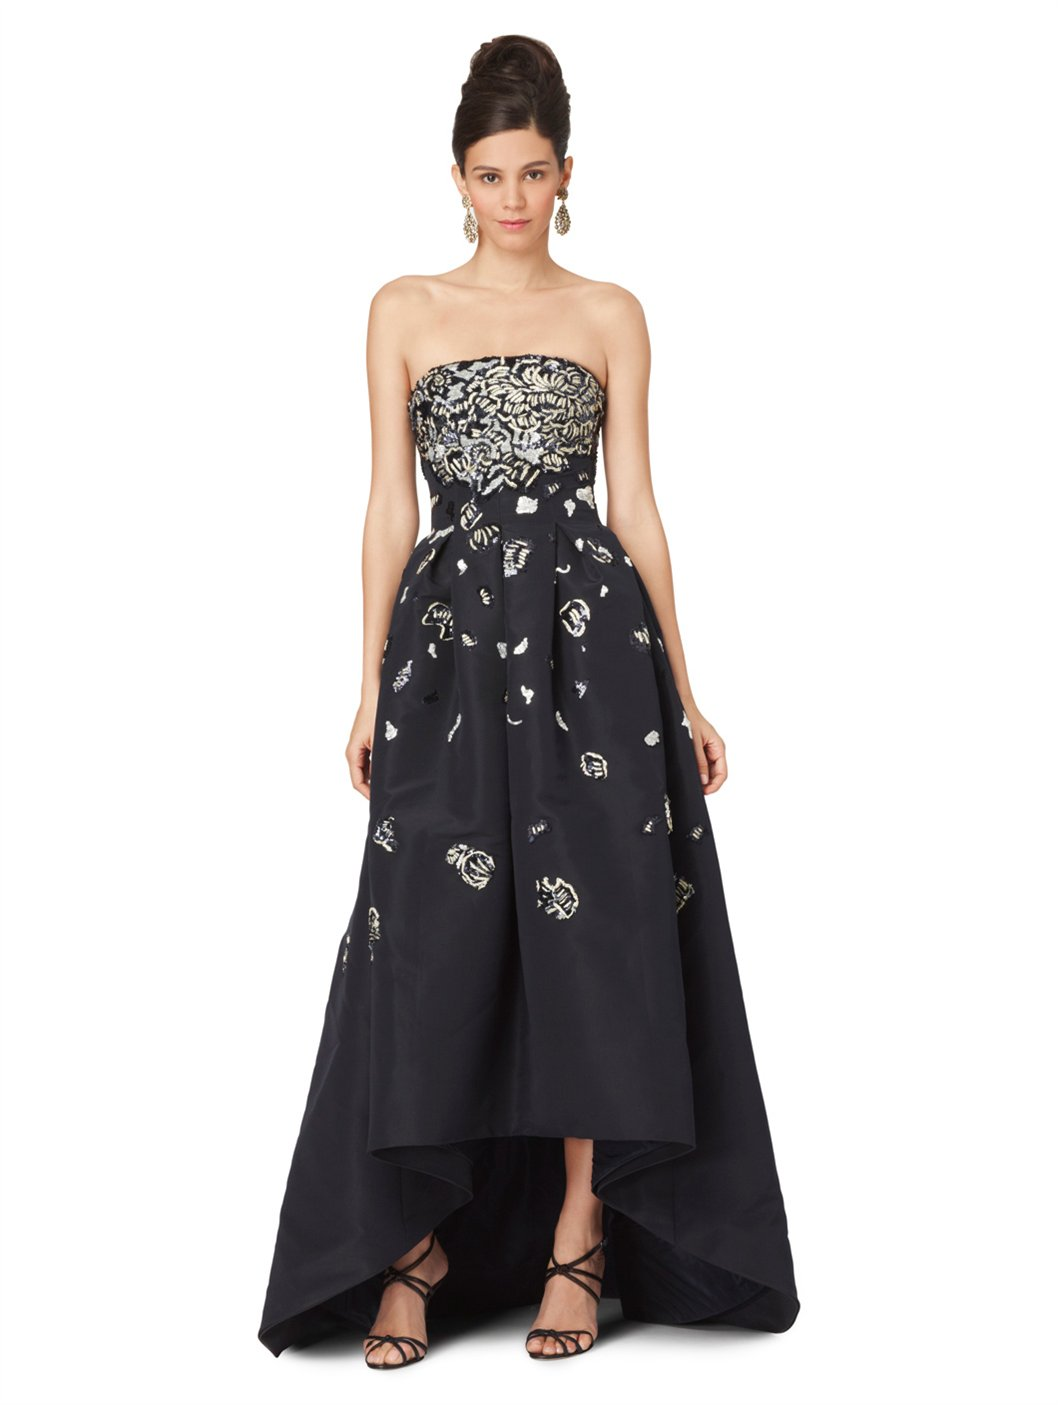 Extravagancia givenchy fall makeup collection, Dresses Wedding in houston tx pictures